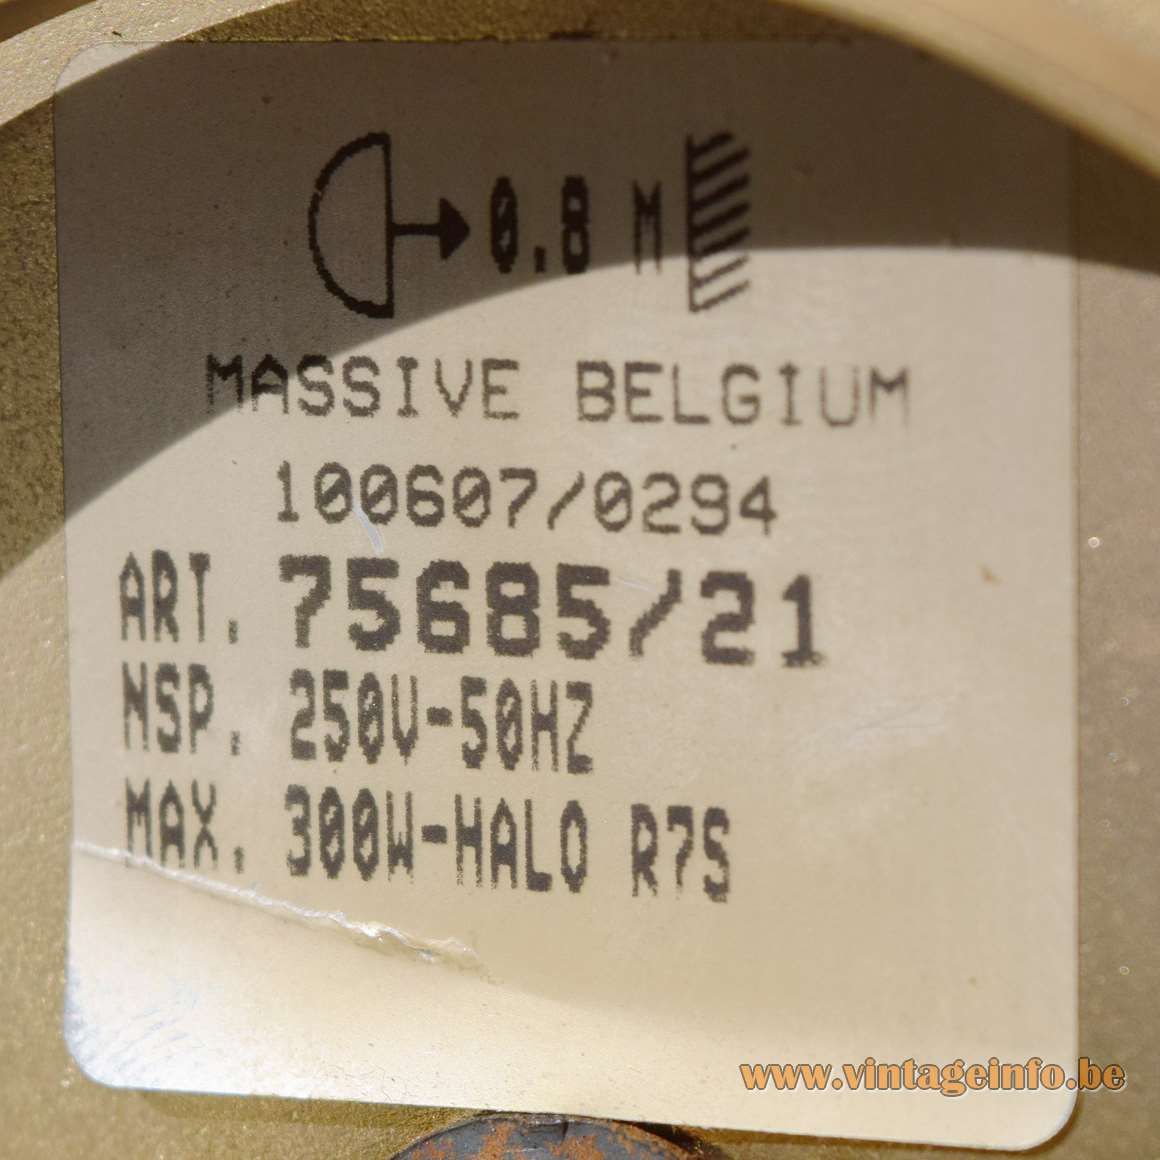 Albatross pendant lamp big frosted glass wing/plate Massive Belgium 1980s 1990s wrinkle-paint label